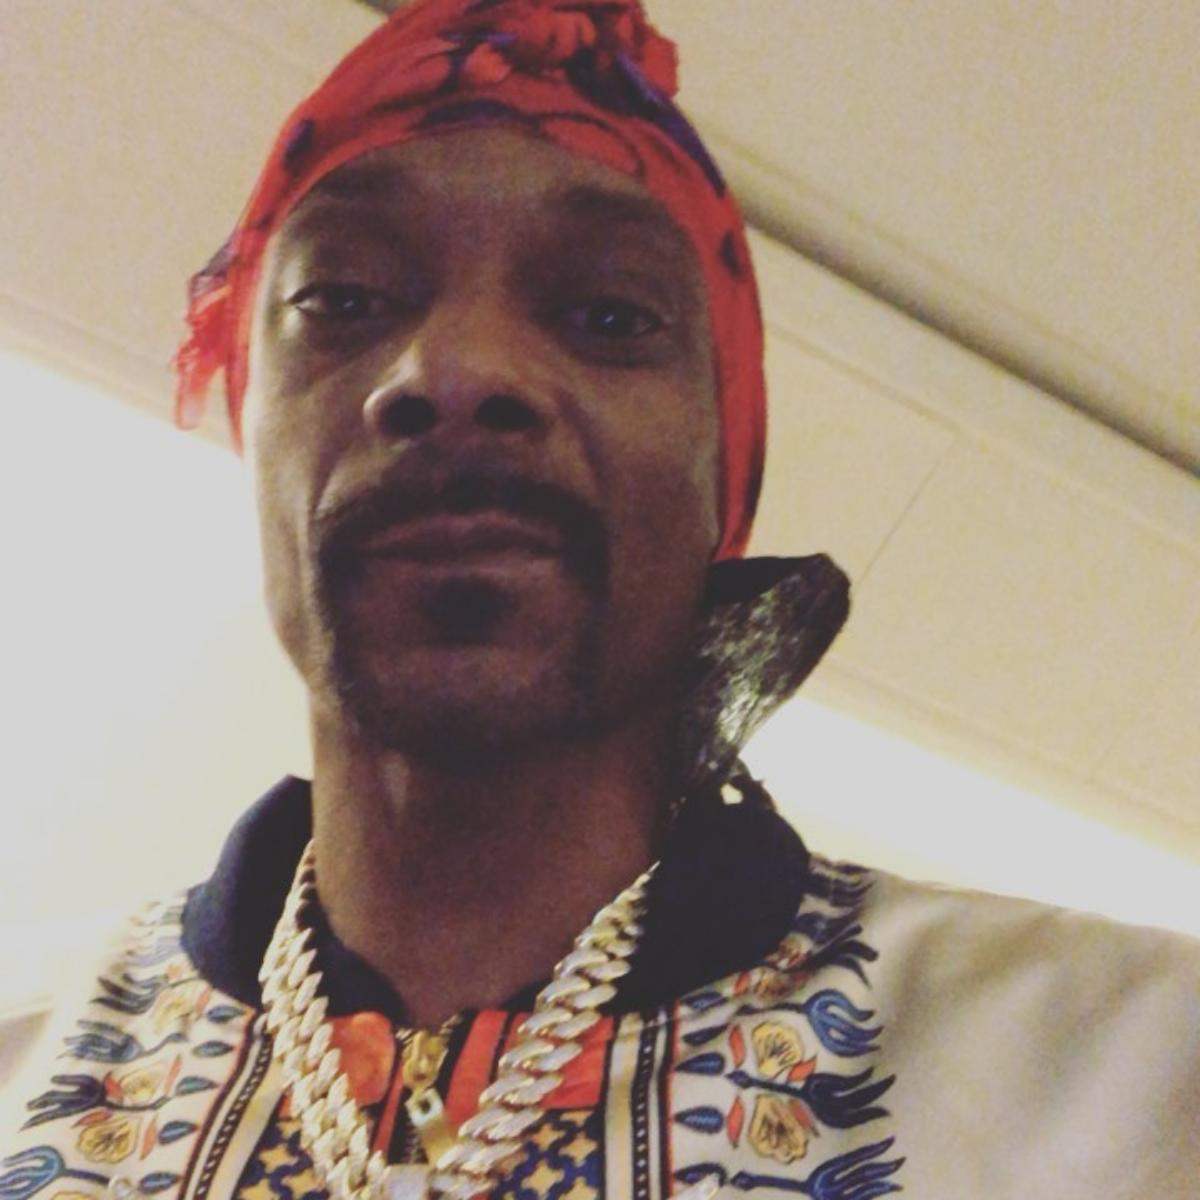 Snoop Dogg Trolls Offset With Photo Of His 'Little Brother'